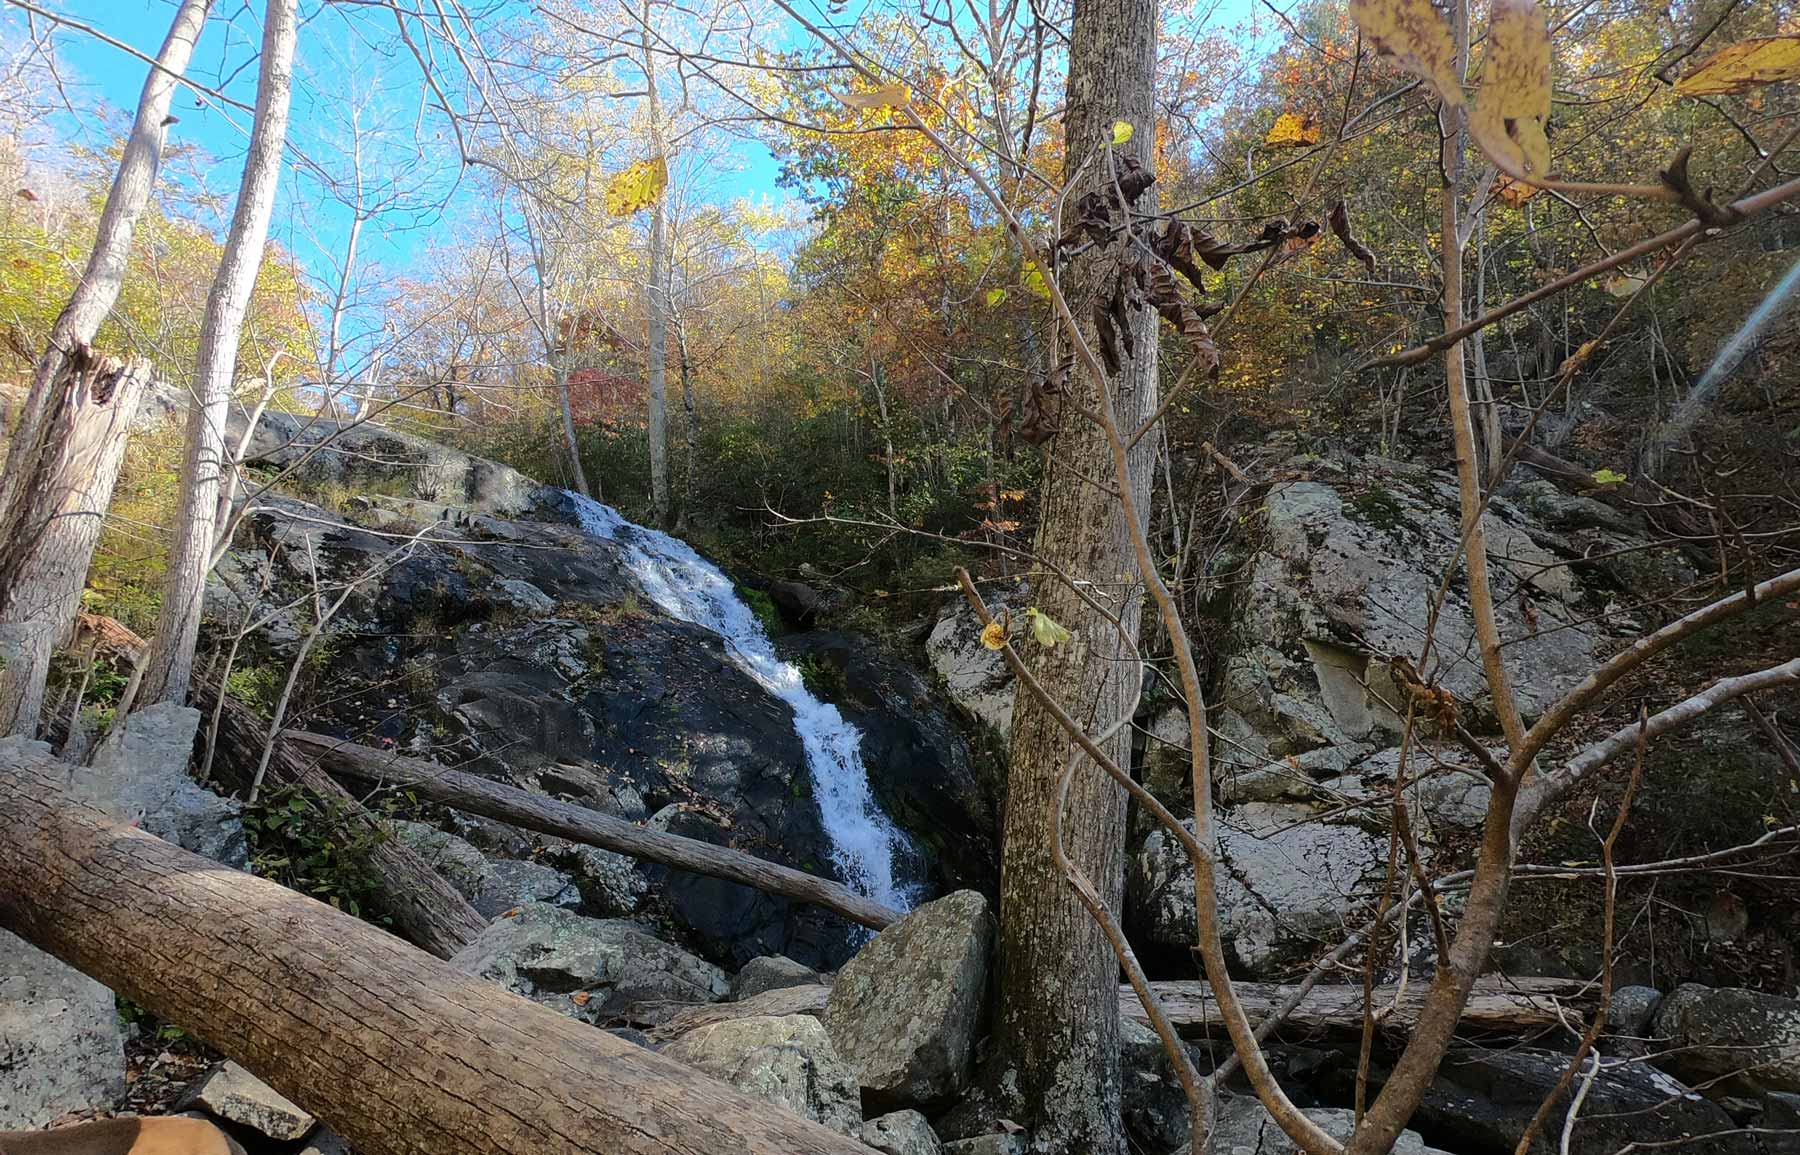 100-ft Fallingwater Cascades, near Peaks of Otter Campground, Blue Ridge Parkway, Virginia